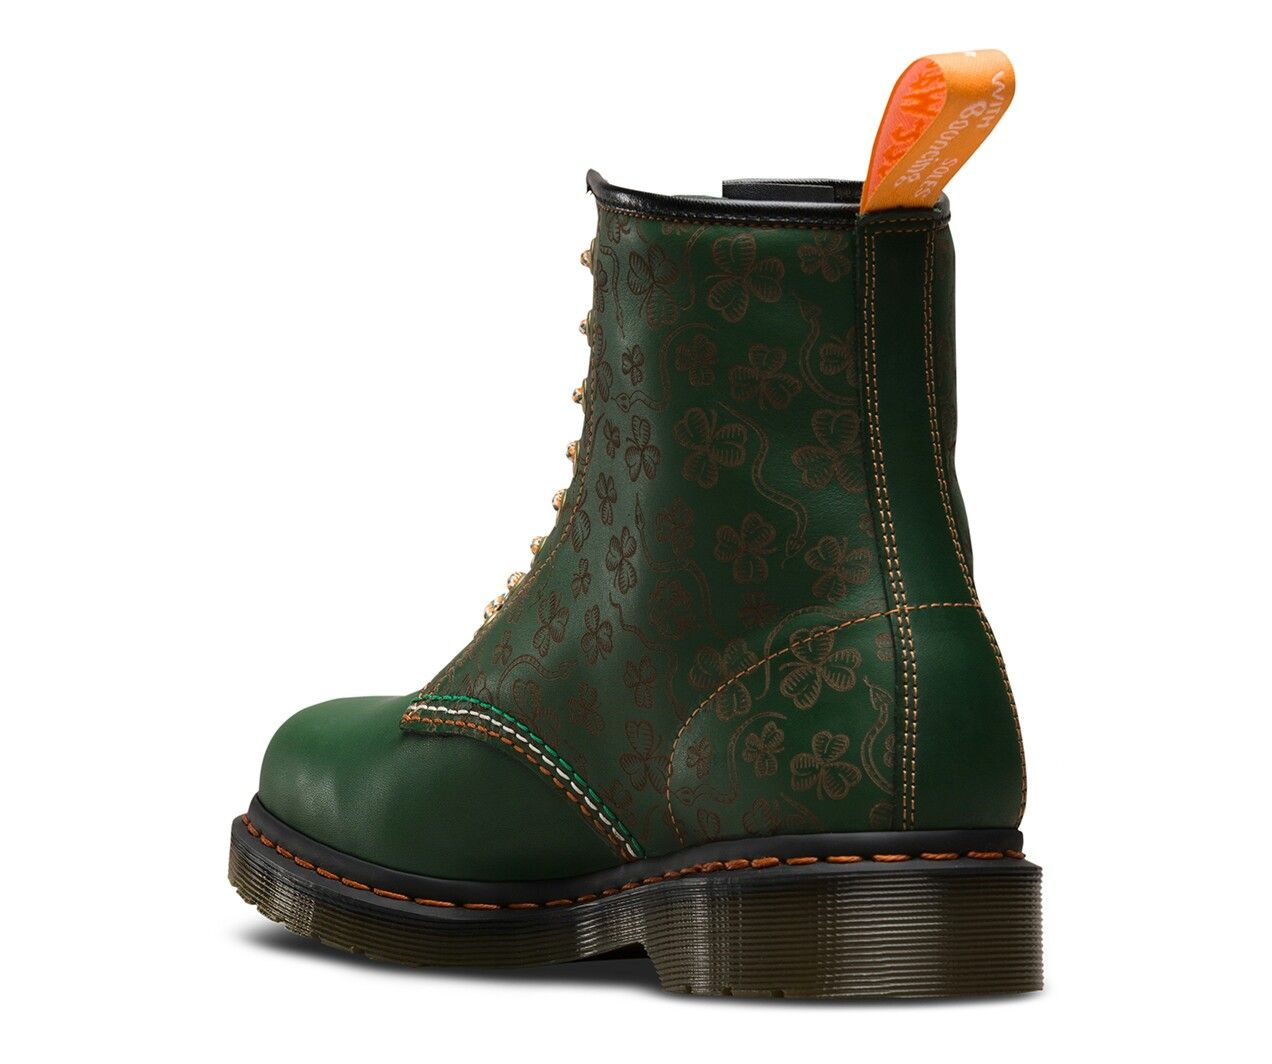 74705060a722db From Dr Martens official website. Limited edition. Laser-etched shamrocks  and snakes. Tri-color laces in orange, green, and white. Orange heel loop.